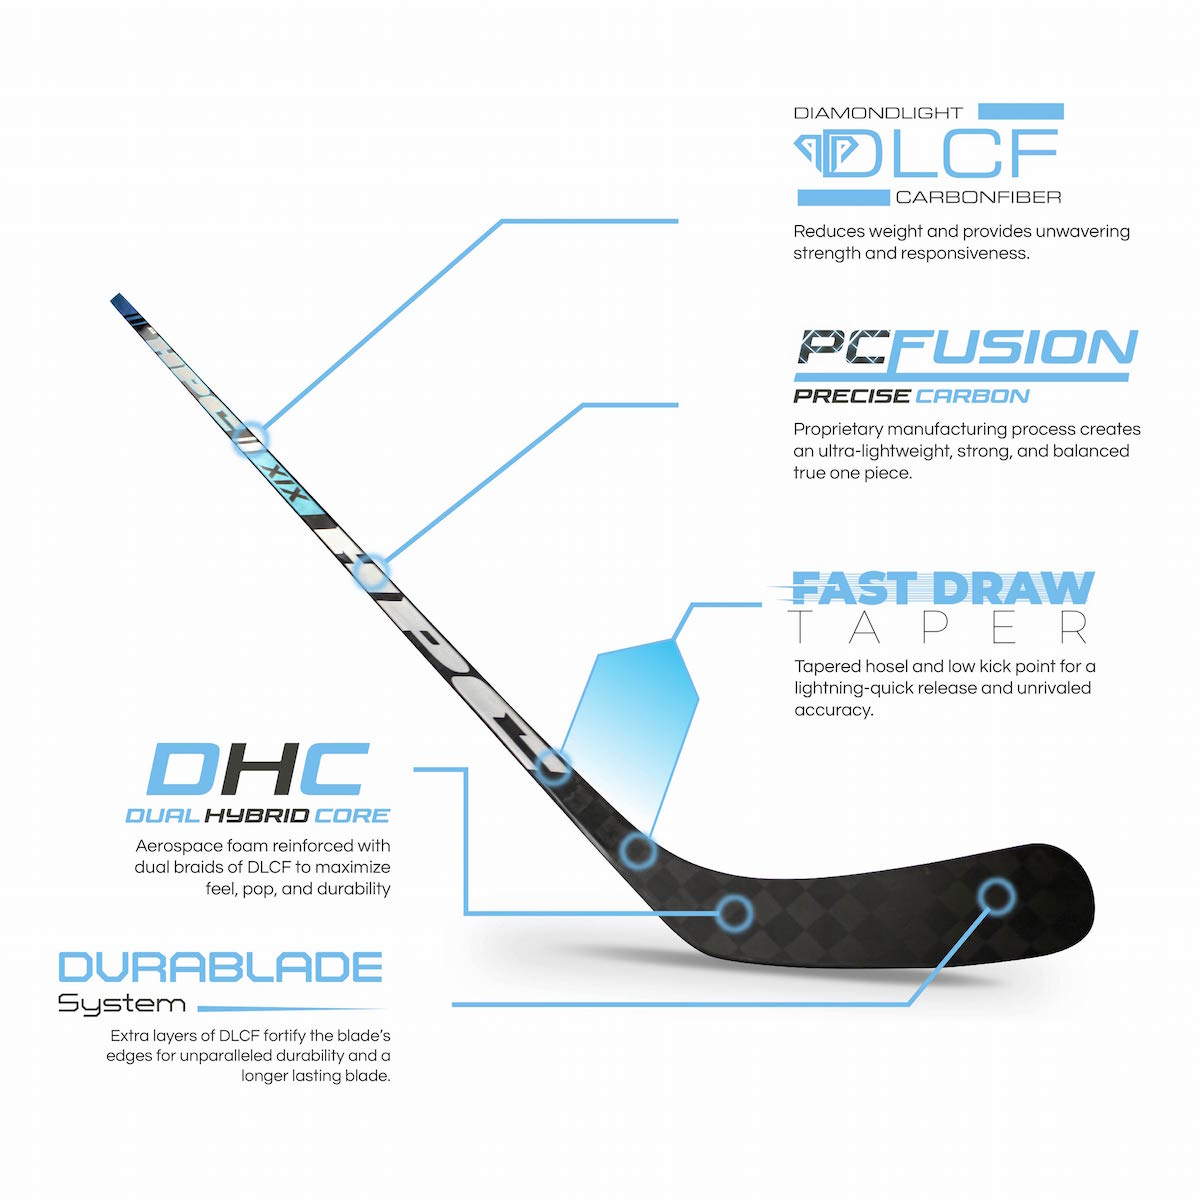 Thanks to cutting-edge materials, a state-of-art construction process, and high-tech performance features, the Hockey Players Club new X1X hockey stick is one of the strongest and lightest hockey sticks ever made.